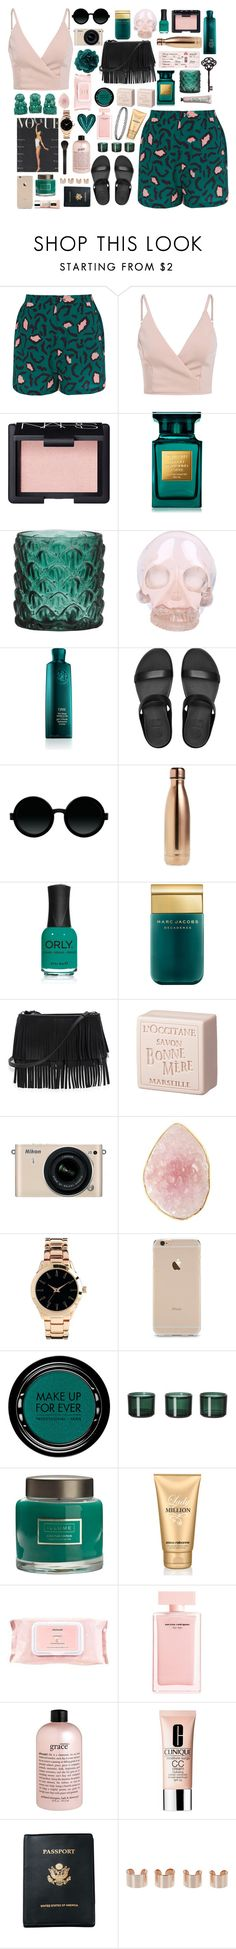 """The Best Thing"" by dailyoutfits0113 ❤ liked on Polyvore featuring Libertine-Libertine, NARS Cosmetics, Tom Ford, Horace, Oribe, FitFlop, Moscot, S'well, ORLY and Marc Jacobs"